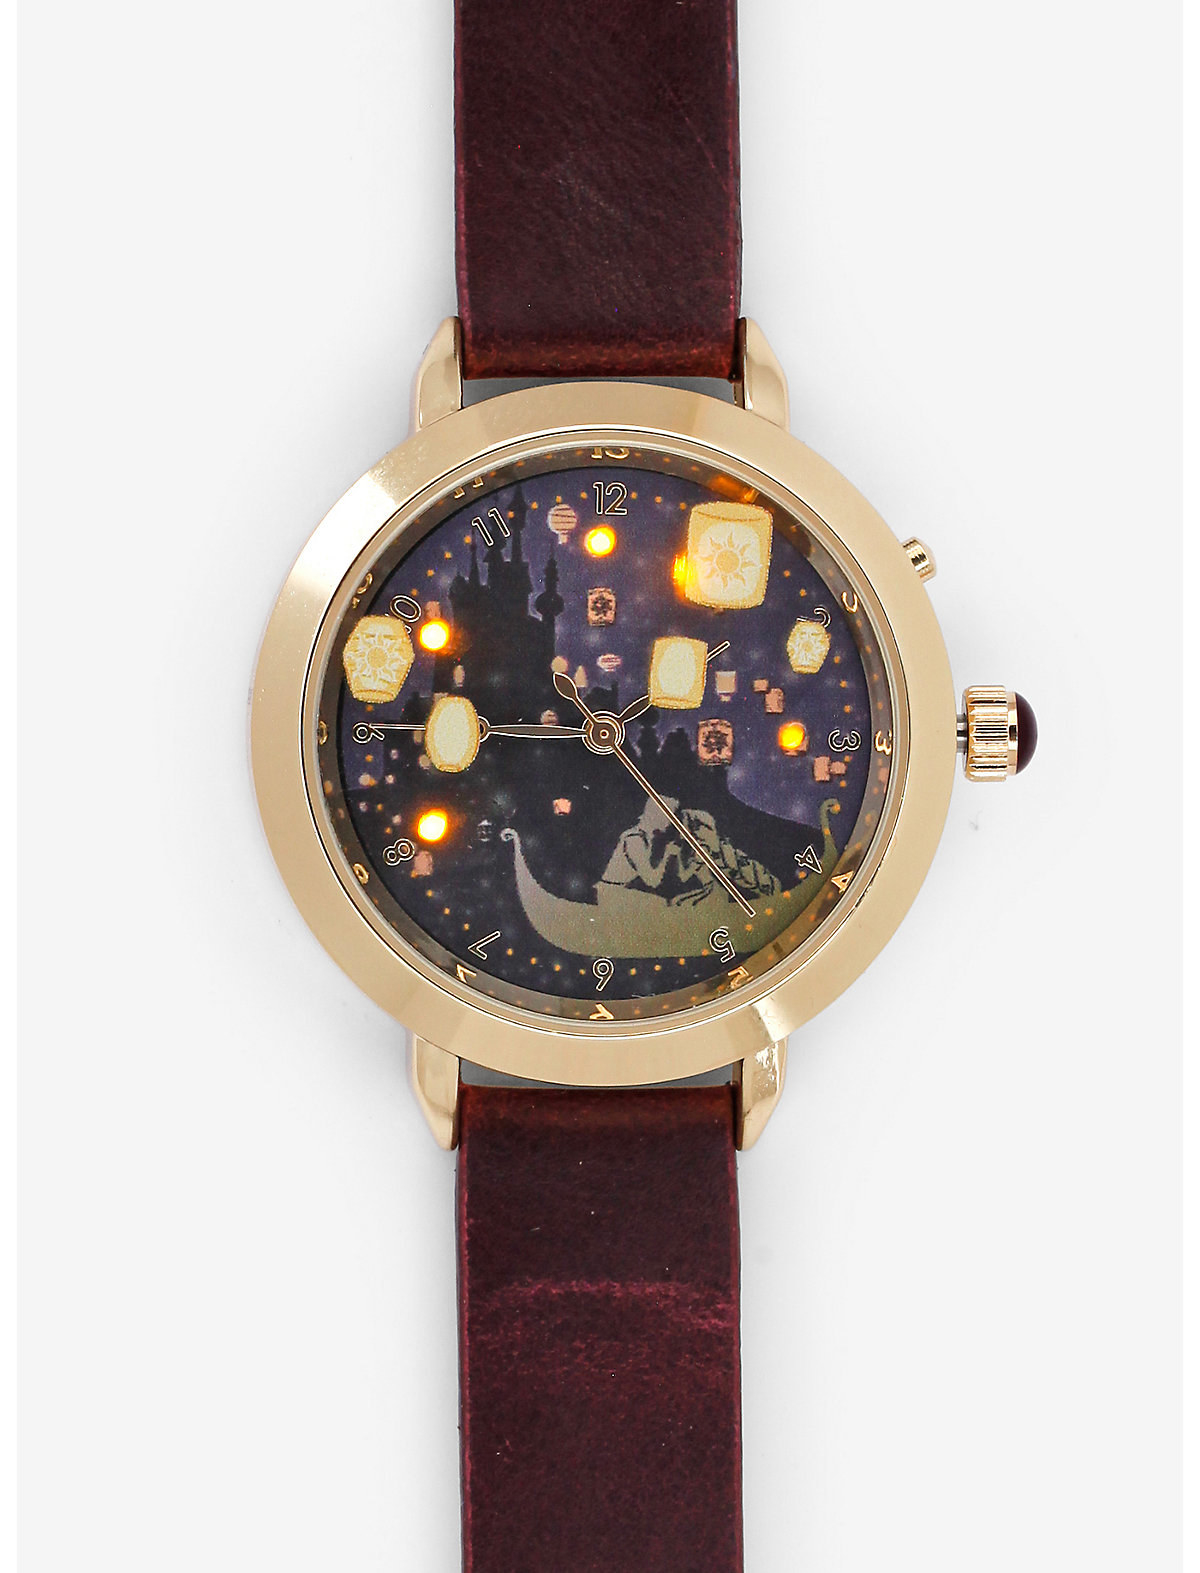 a wrist watch with the lantern scene from tangled inside the face and light up lanterns